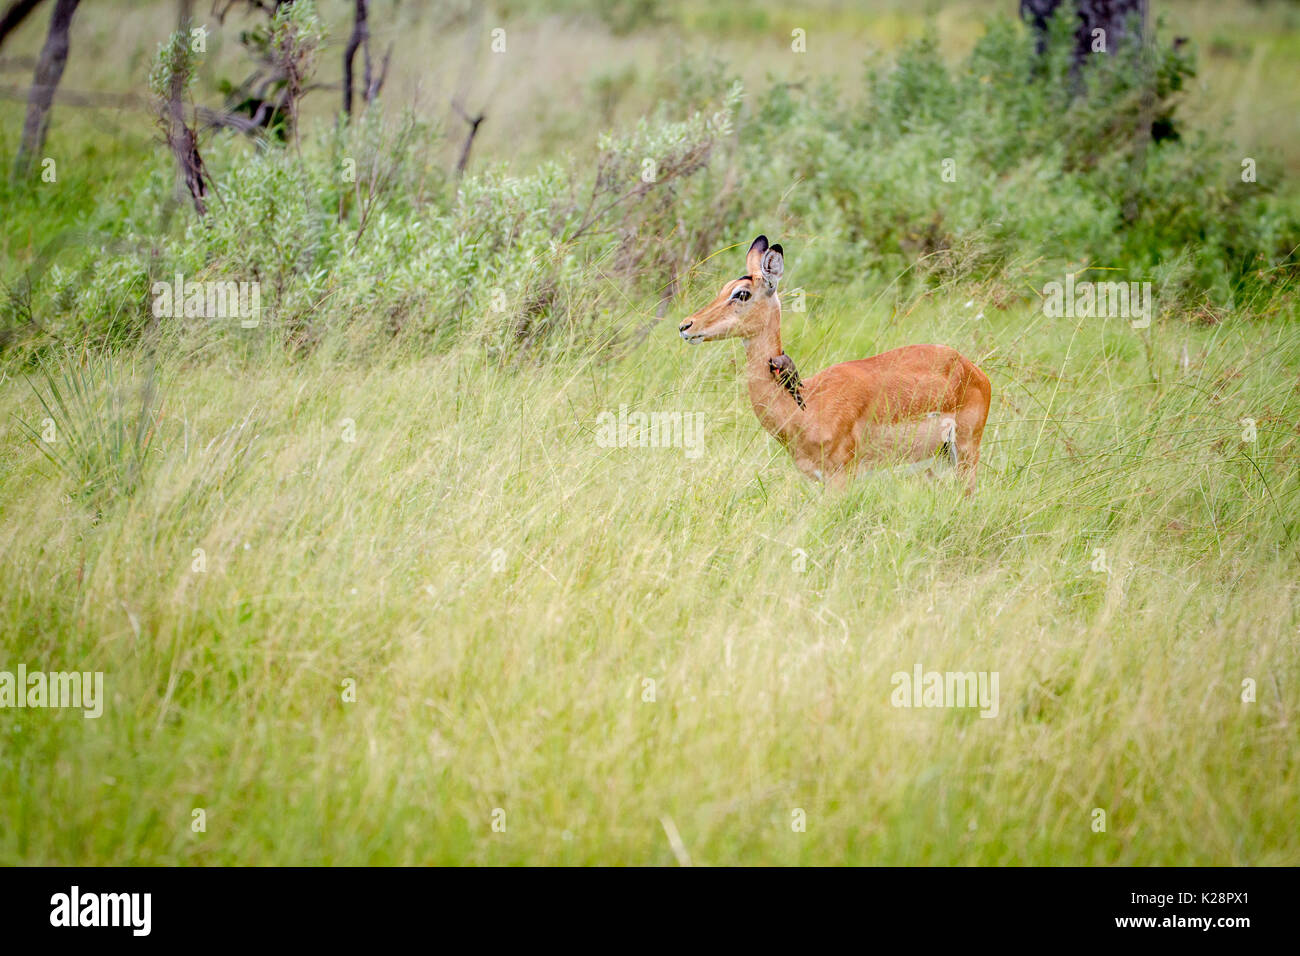 Female Impala standing in the grass in the Okavango Delta, Botswana. - Stock Image